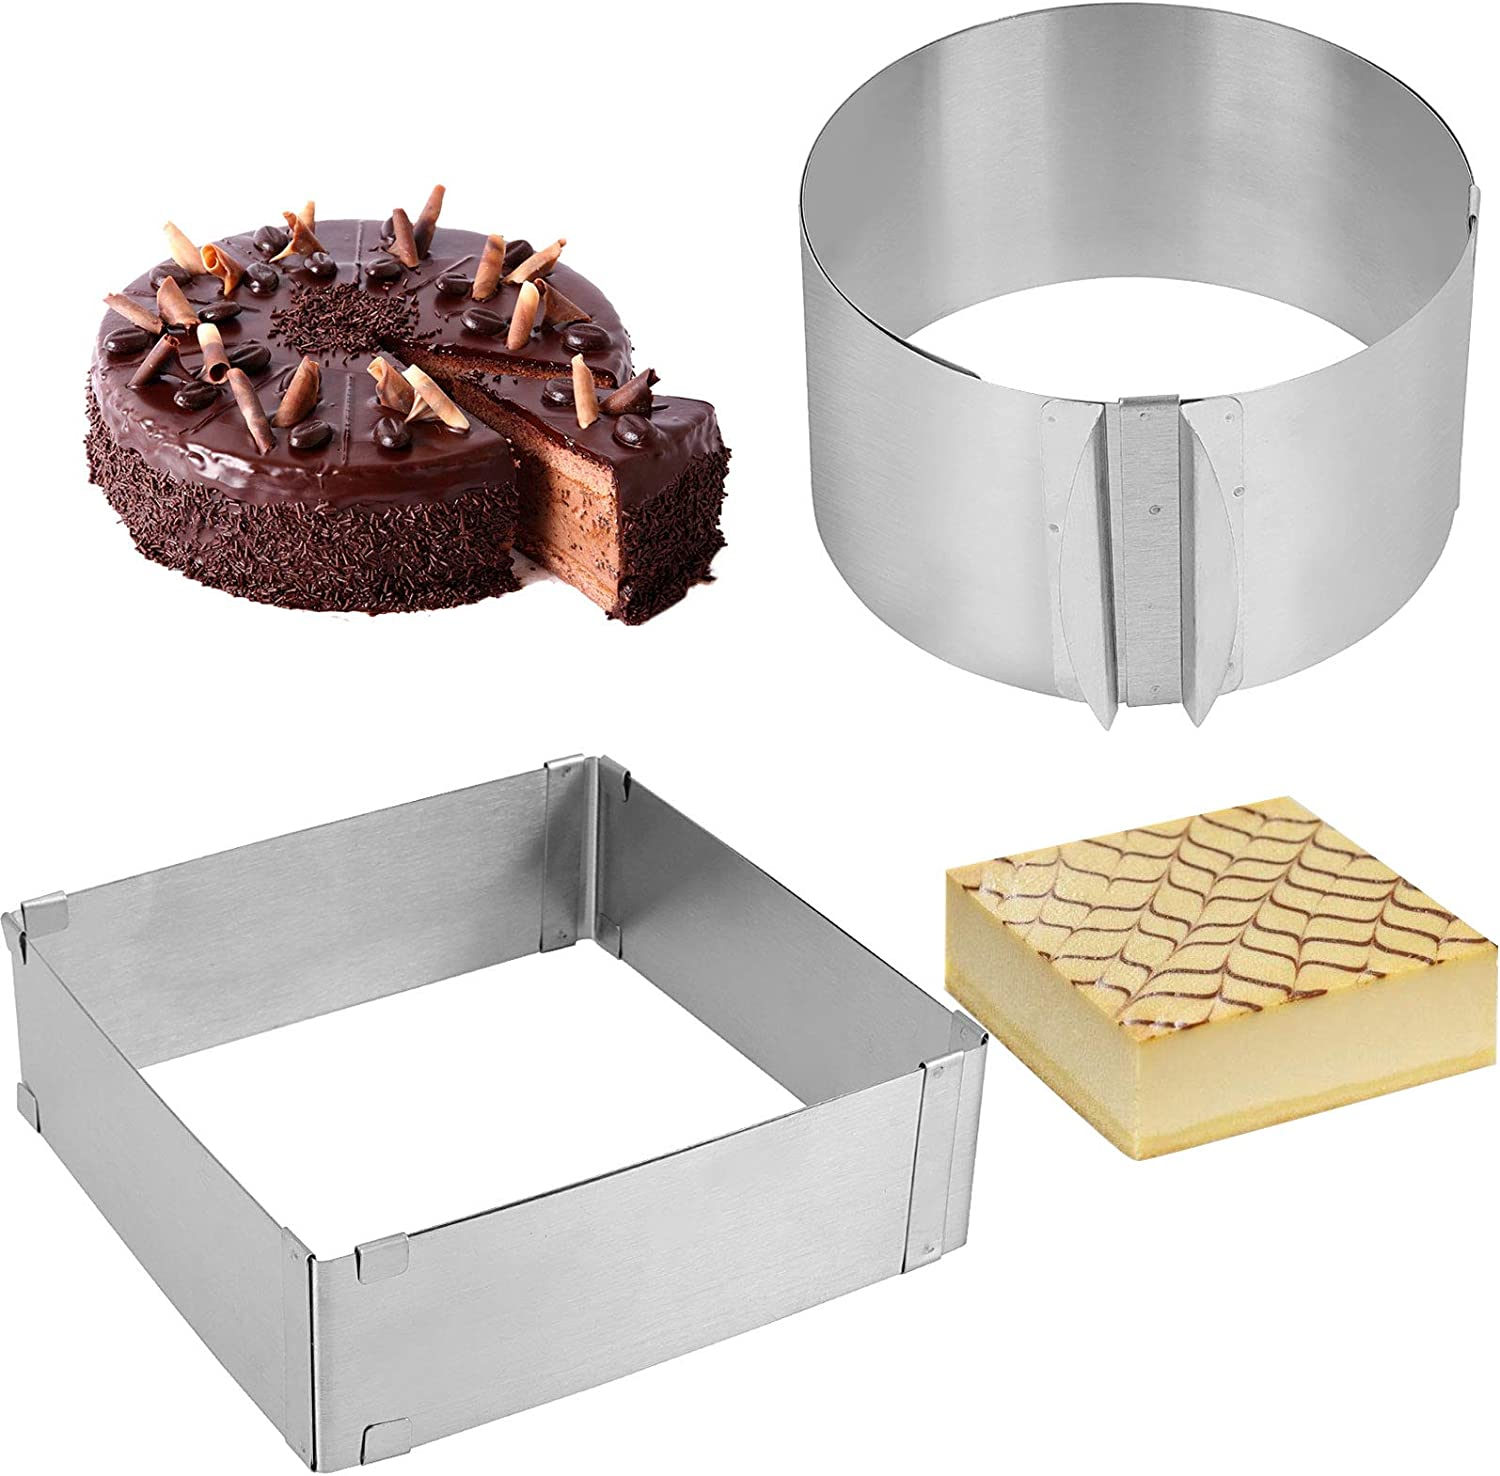 ZOENHOU 2 Pack 6-12 Inch Cake Mold Ring, Stainless Steel Mold Cake Baking Adjustable Mousse Cake Ring Mould Tools, with scaling for Kitchen DIY Pastry, Square and Round